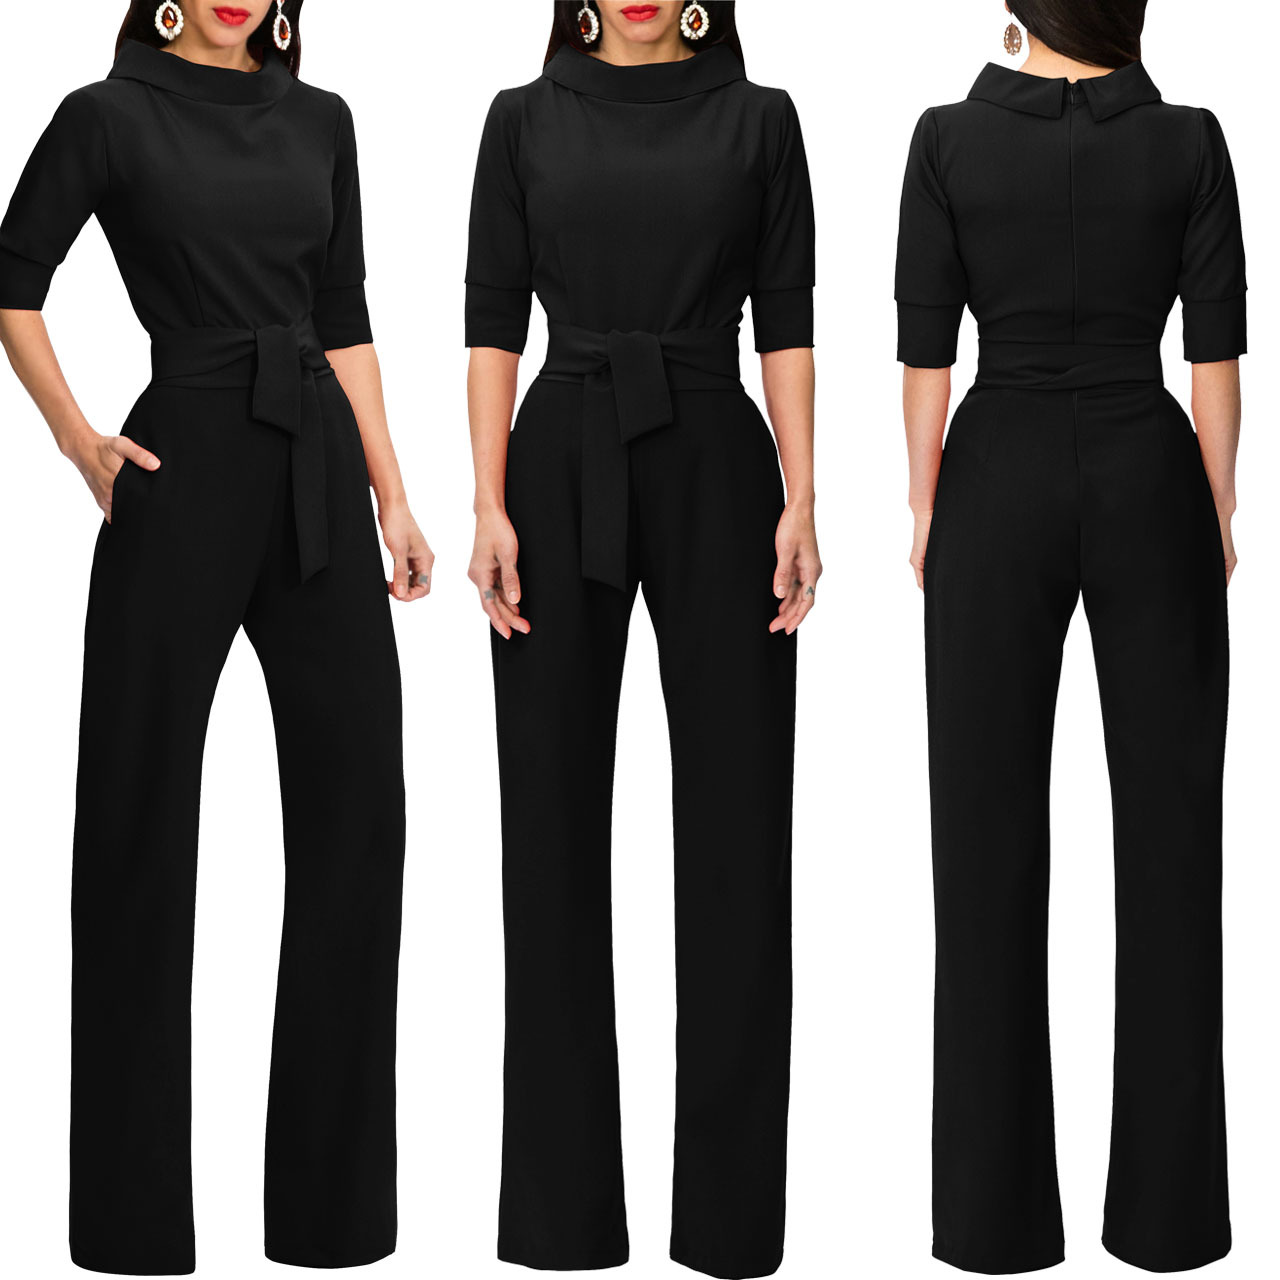 Women Jumpsuit Half Sleeve Stand Collar Belted Casual Wide Leg Pants Office Rompers Overalls black